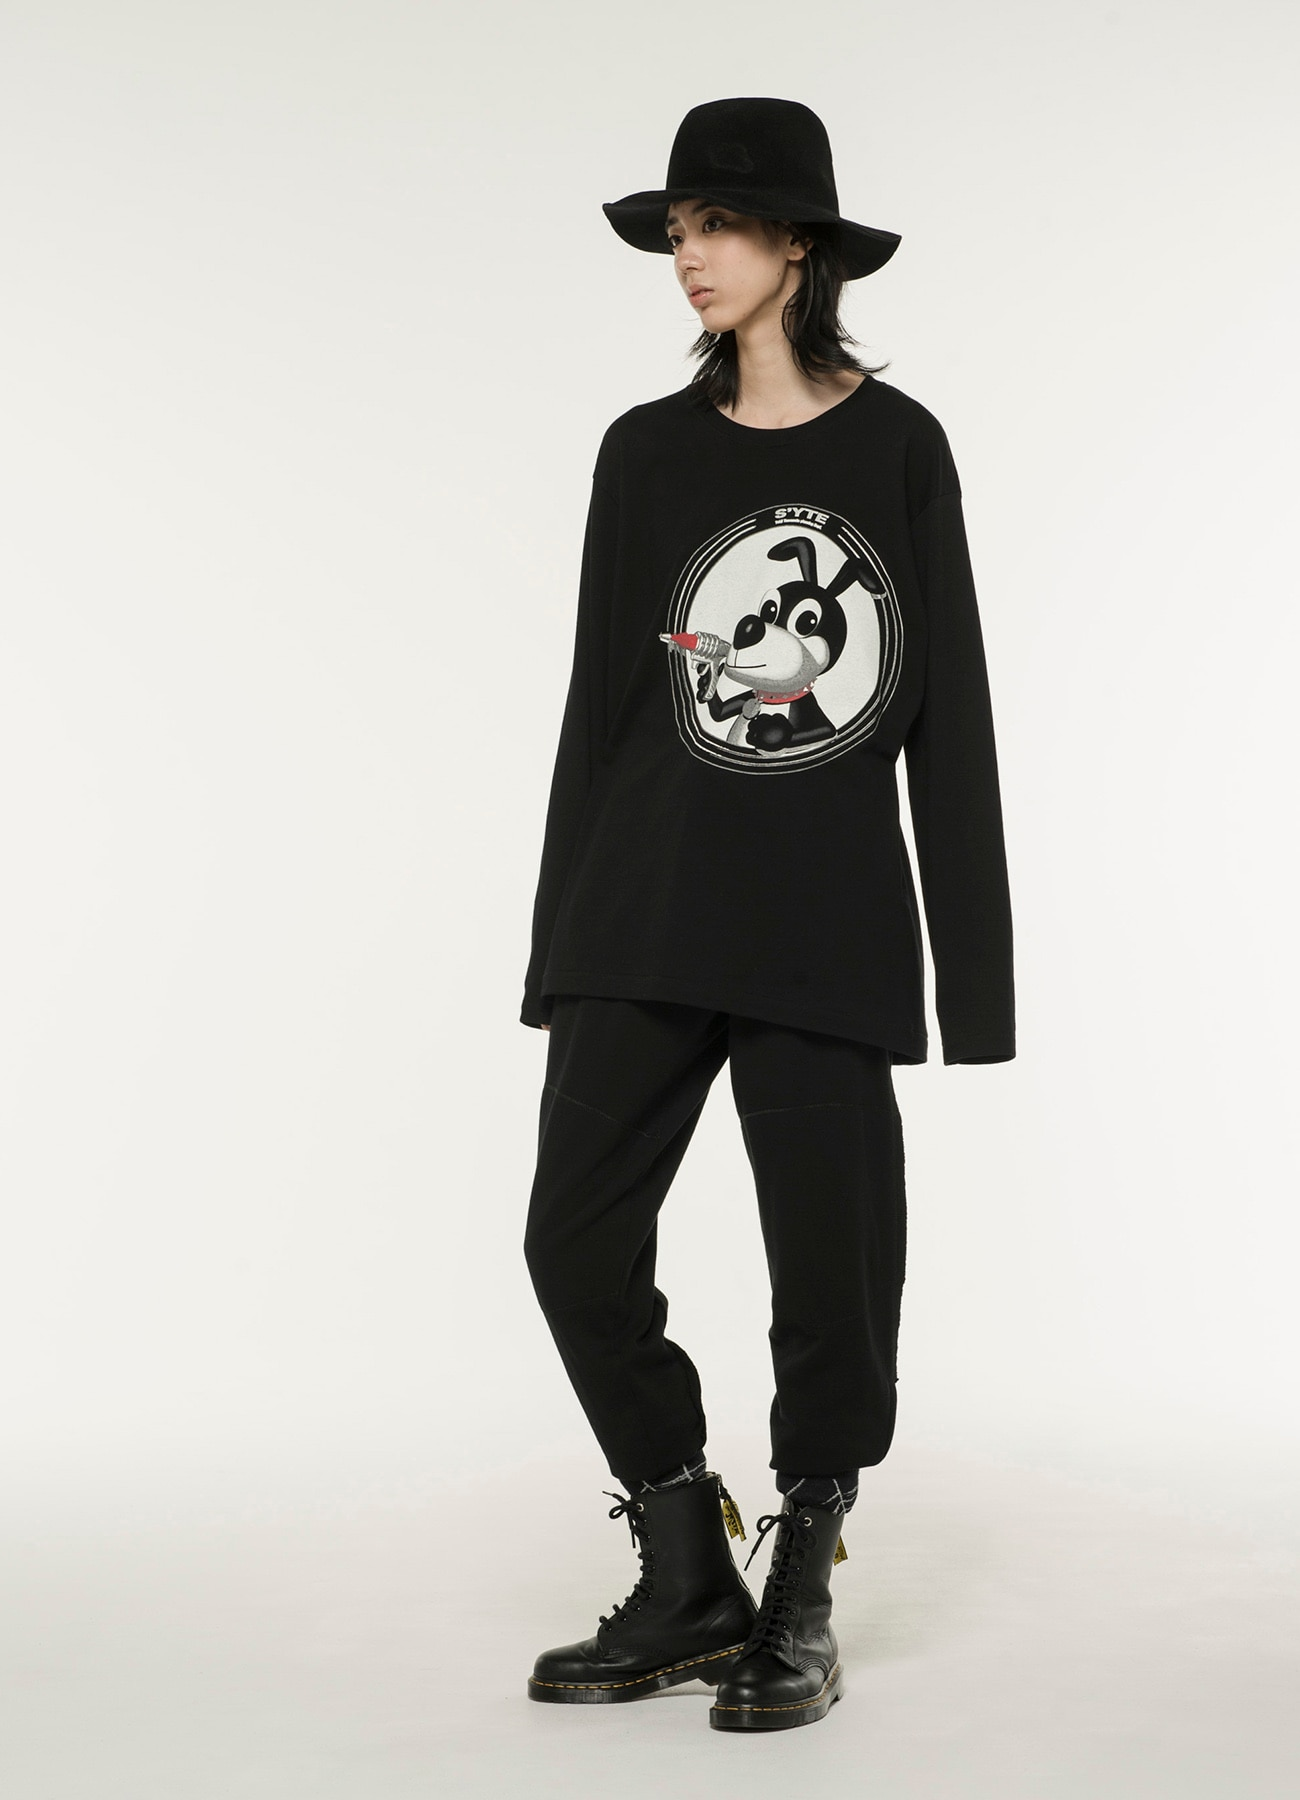 20/CottonJersey Ray Gun of Black Dog Long Sleeve T-Shirt